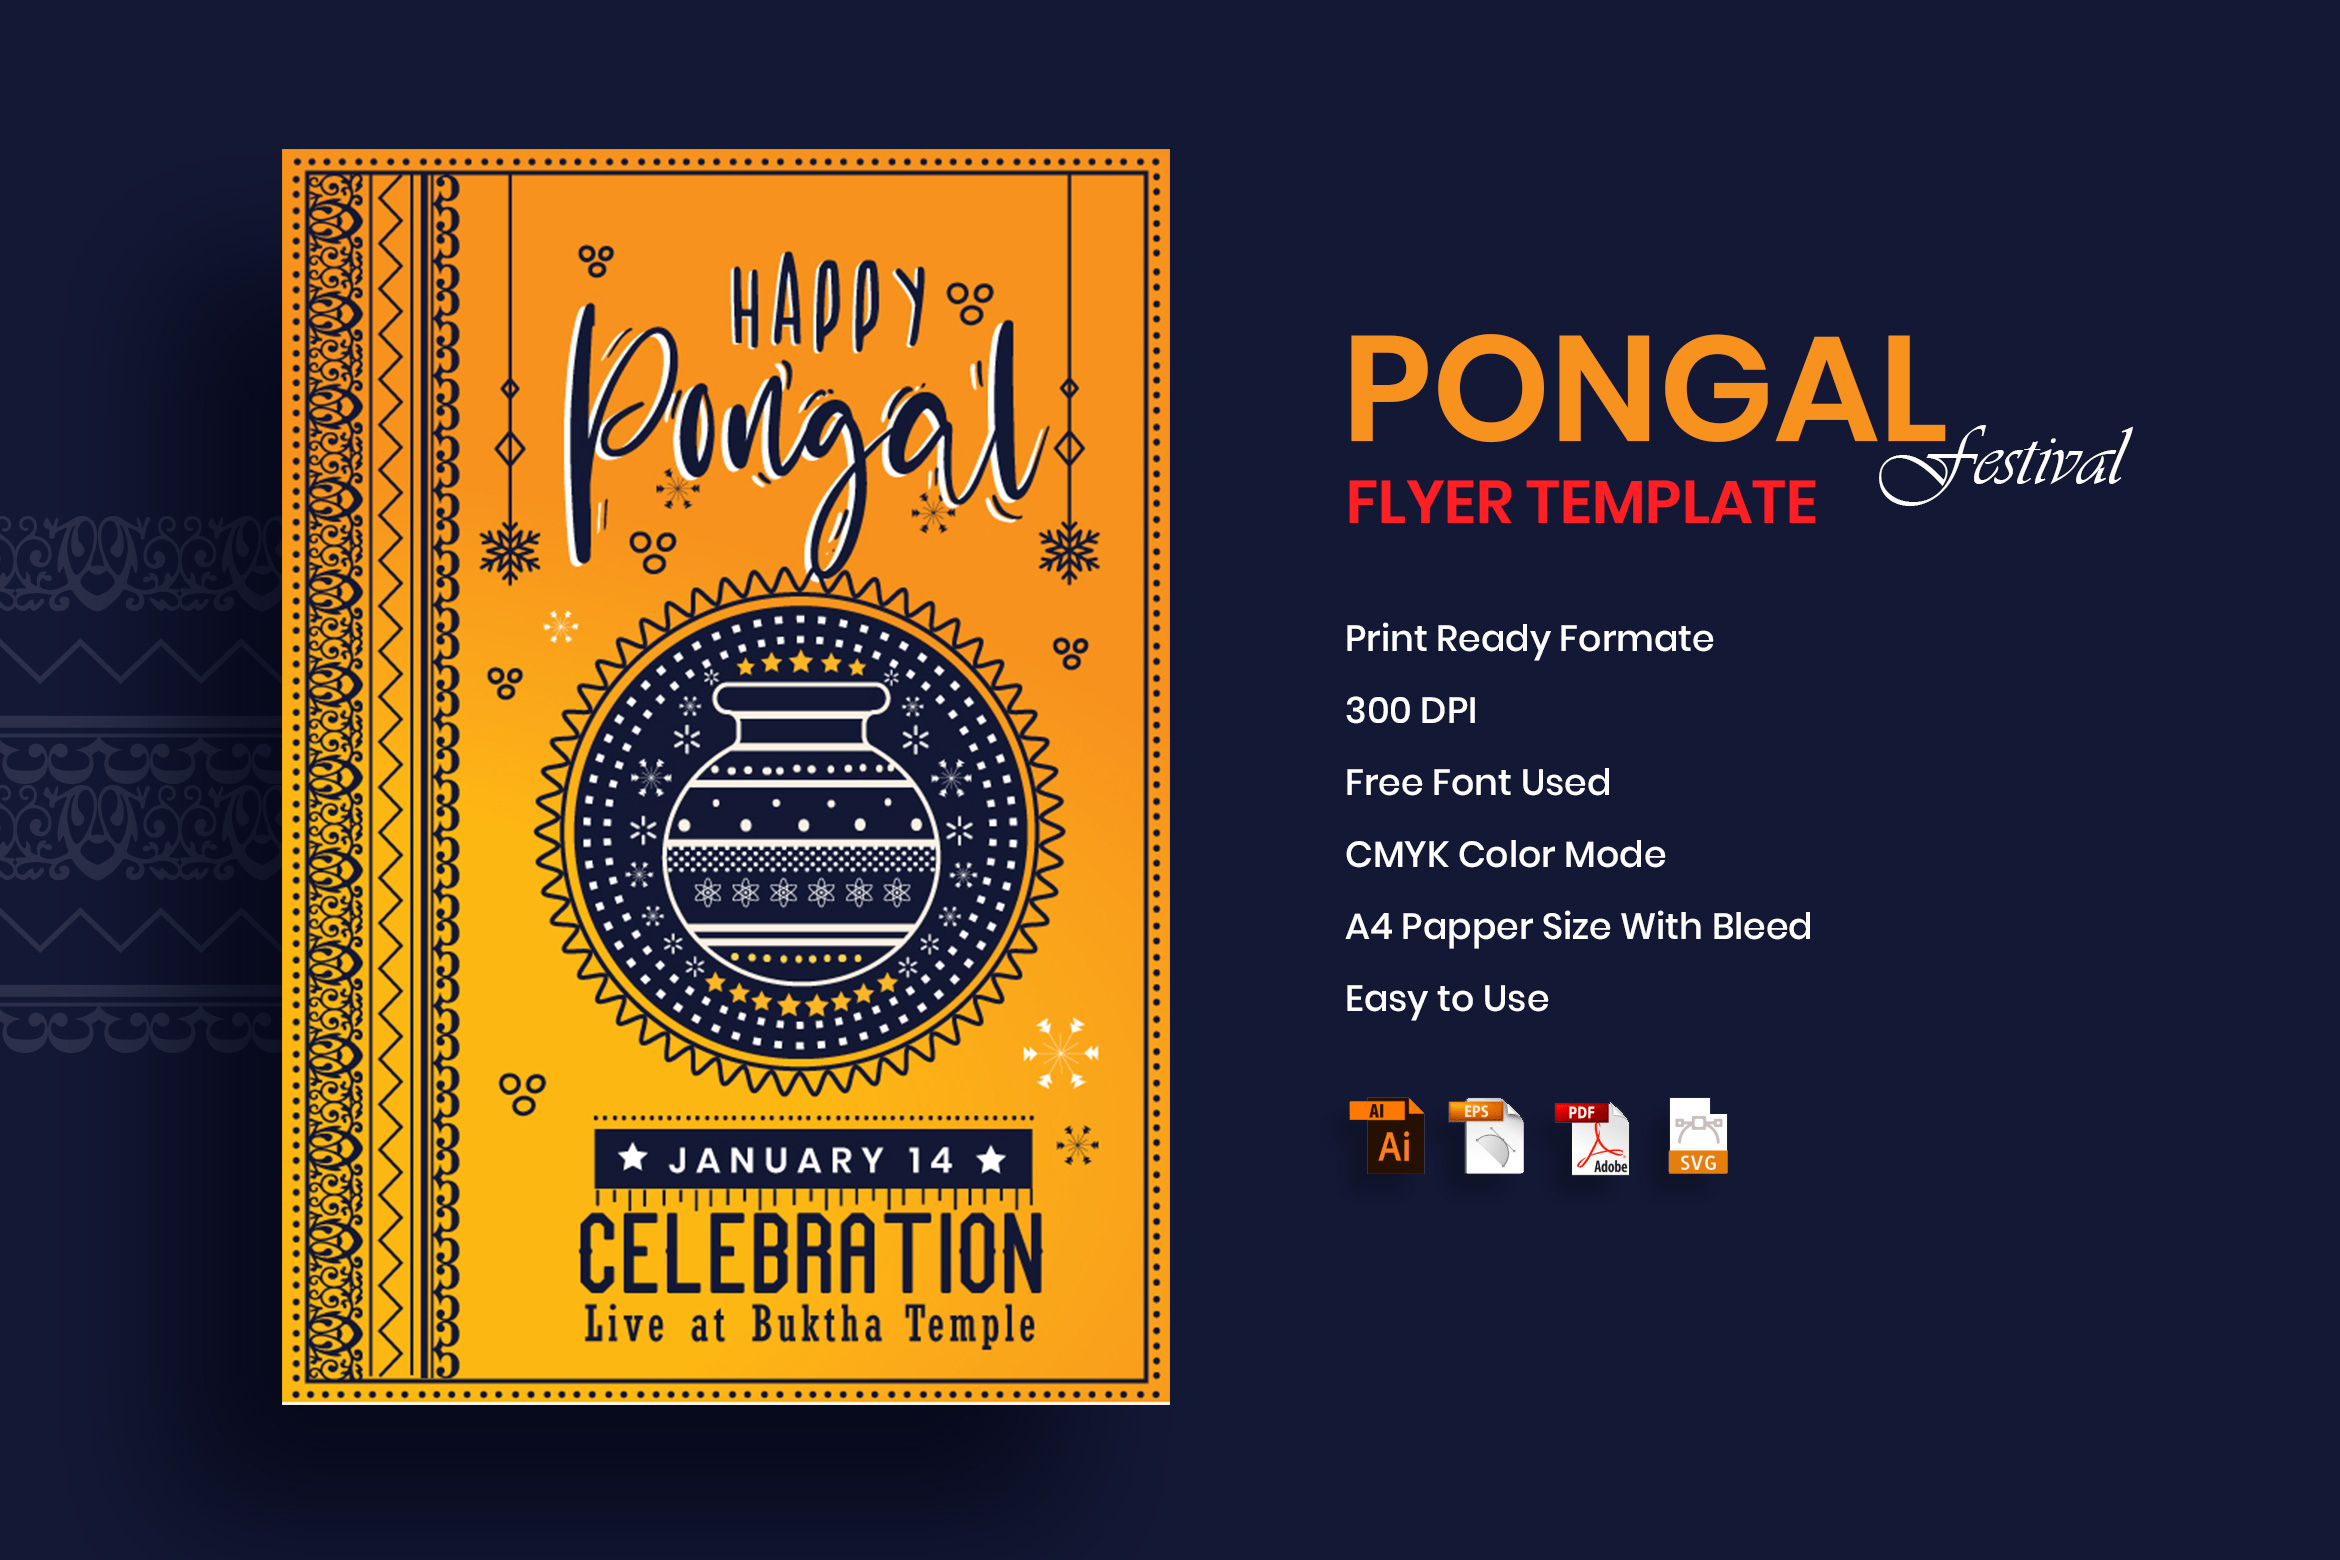 Pongal Flyer Template